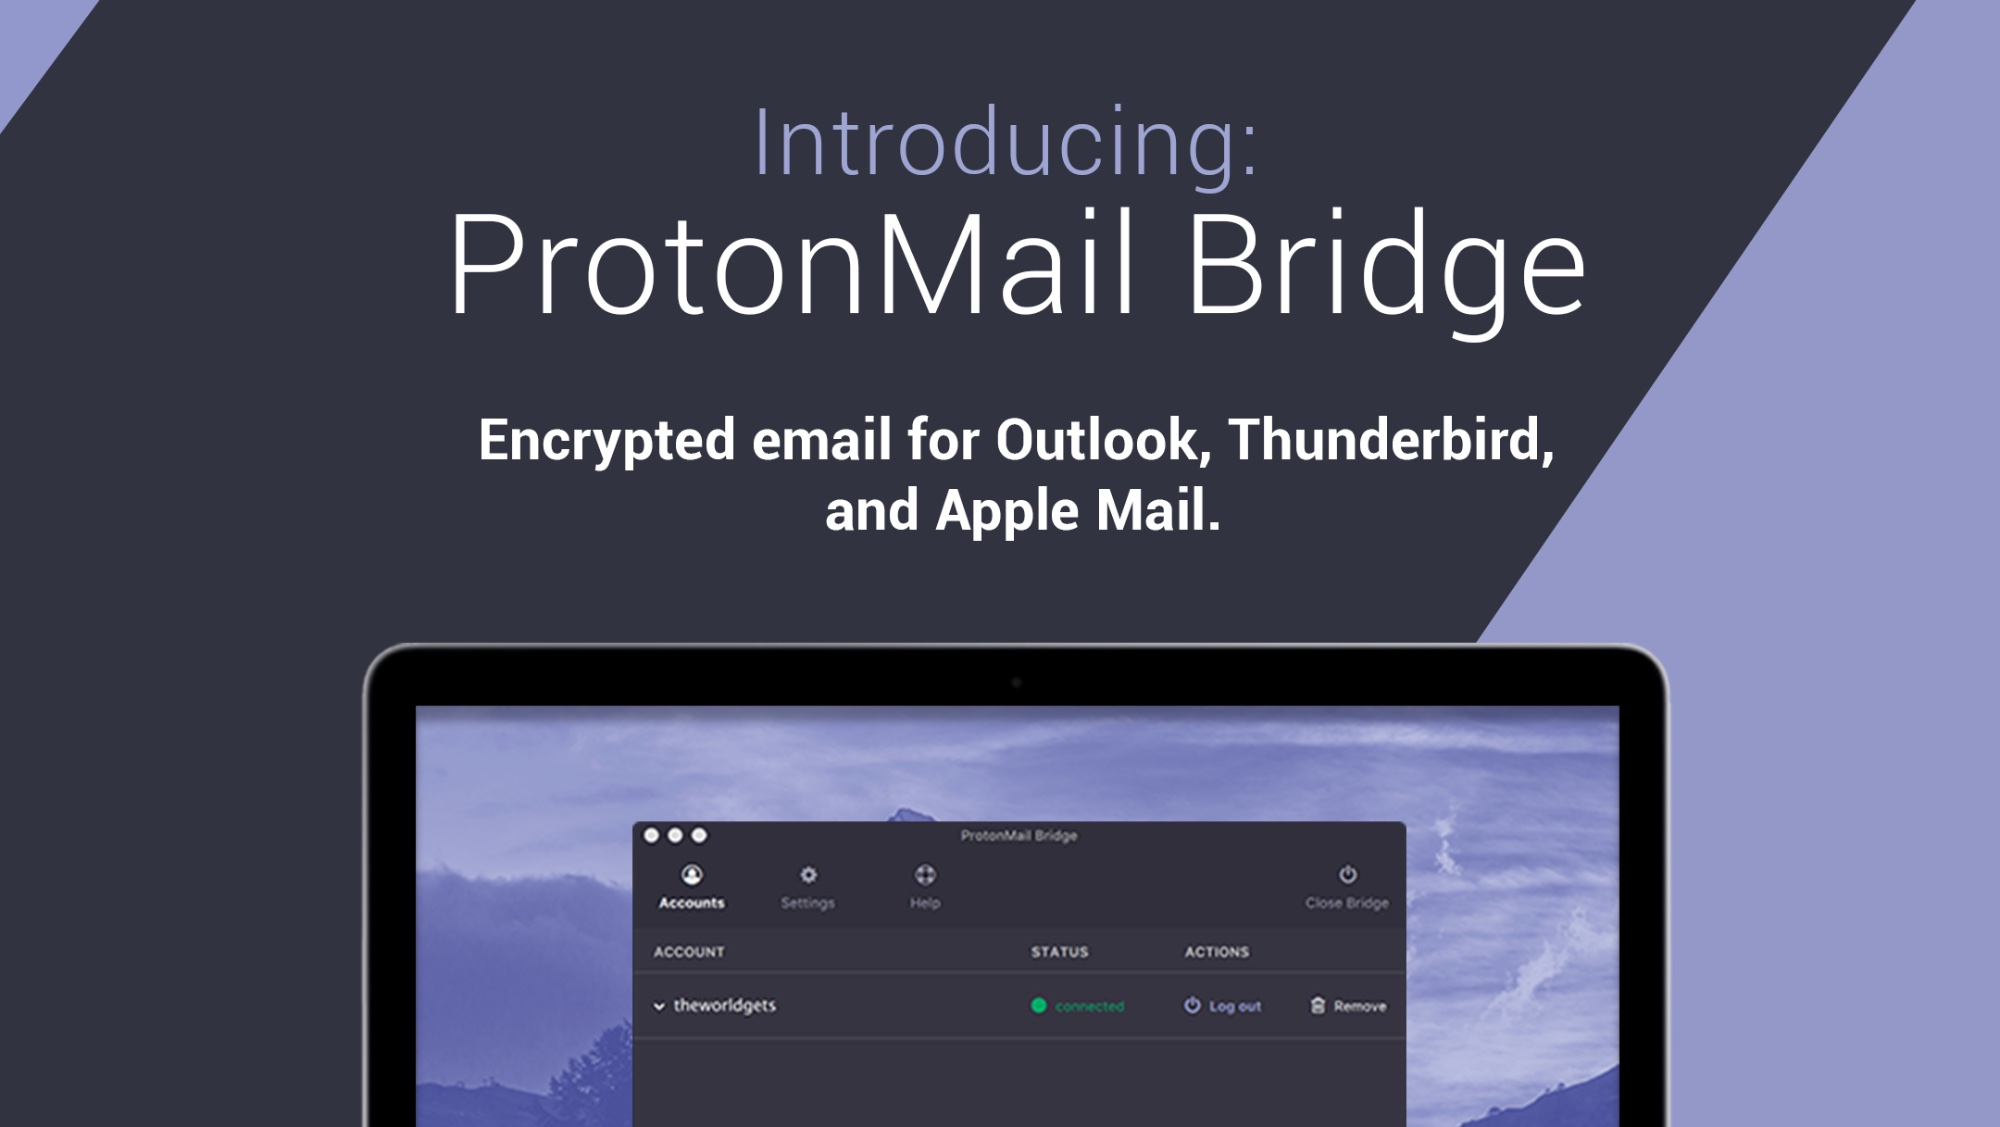 ProtonMail Bridge brings the encrypted email service to Apple Mail